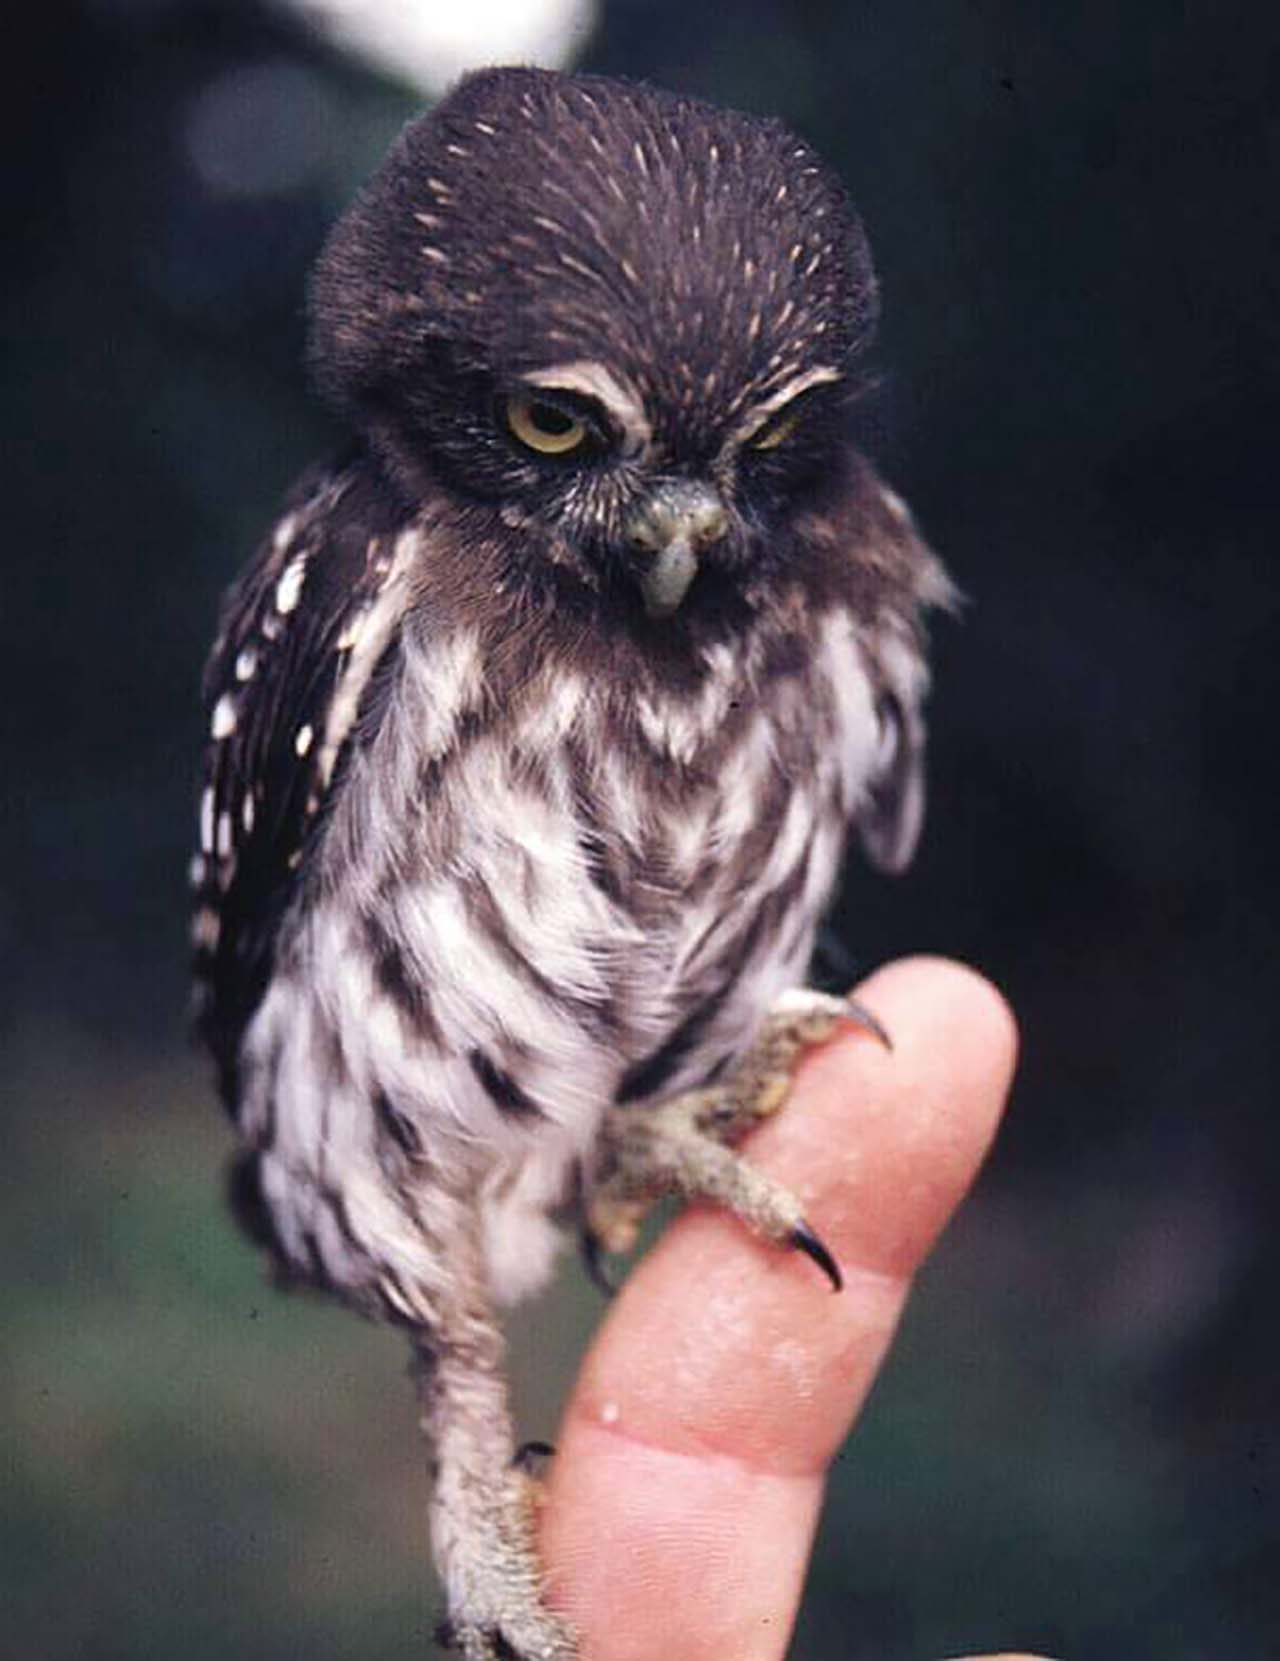 27 Adorable & Tiny Animals That Are Too Cute To Handle #4: Owl